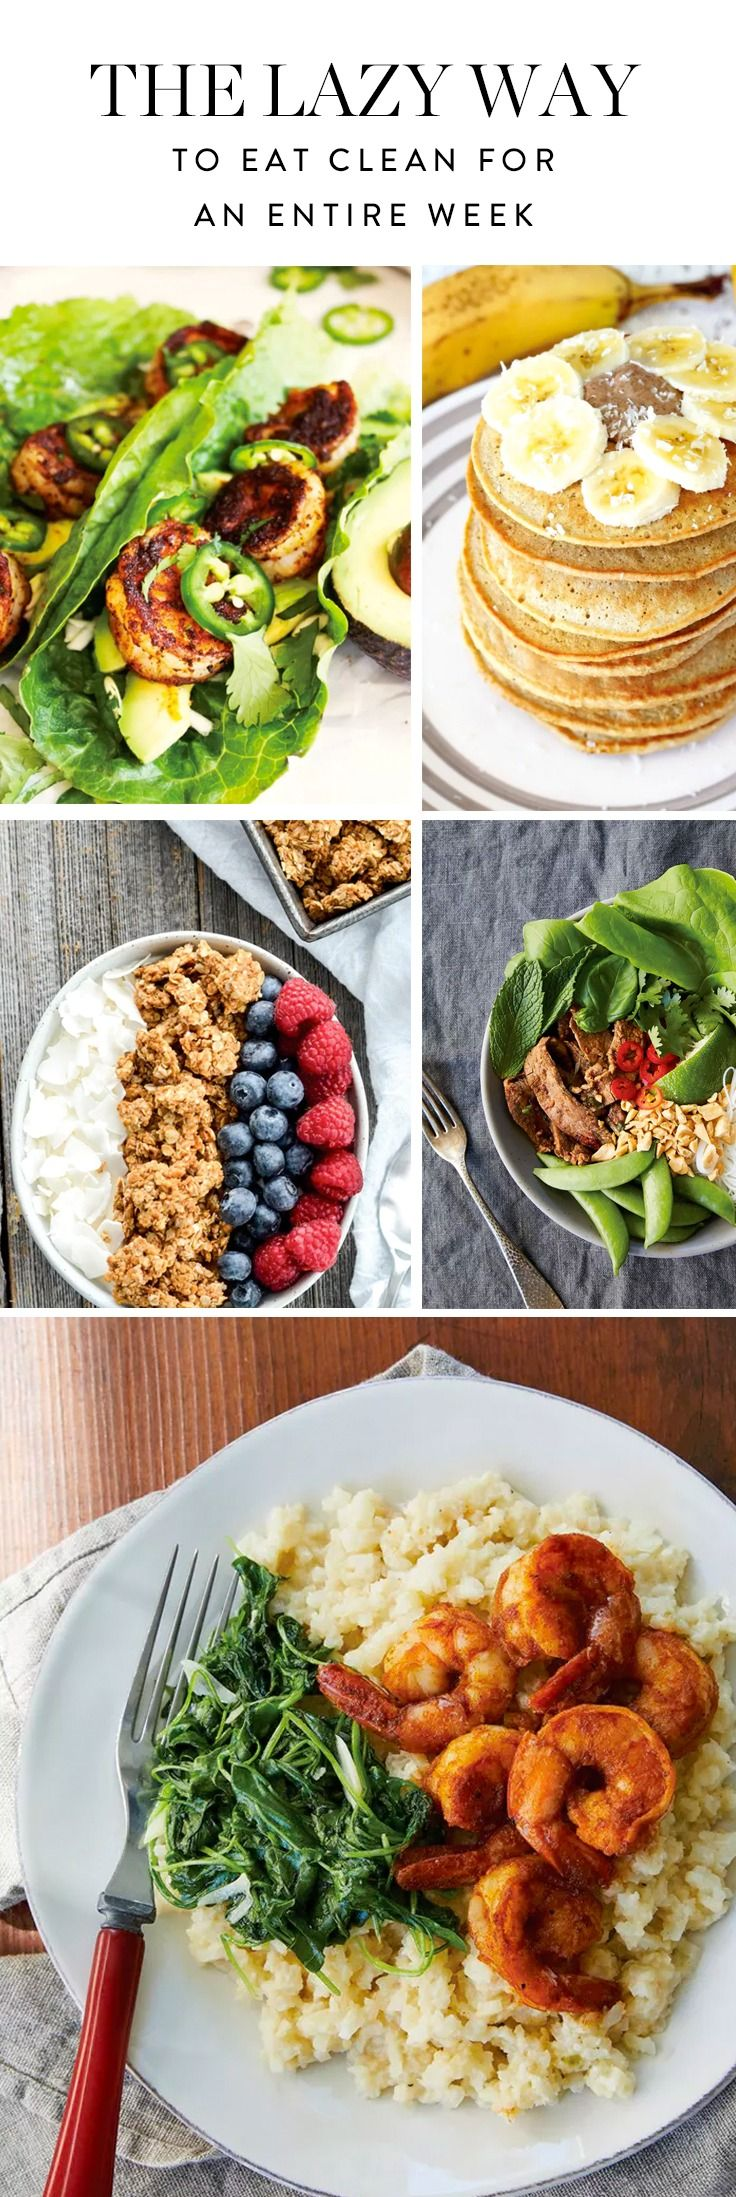 Best 25 Healthy Eating Ideas On Pinterest Eating Healthy Clean Eating Foods And Does Advocare Work